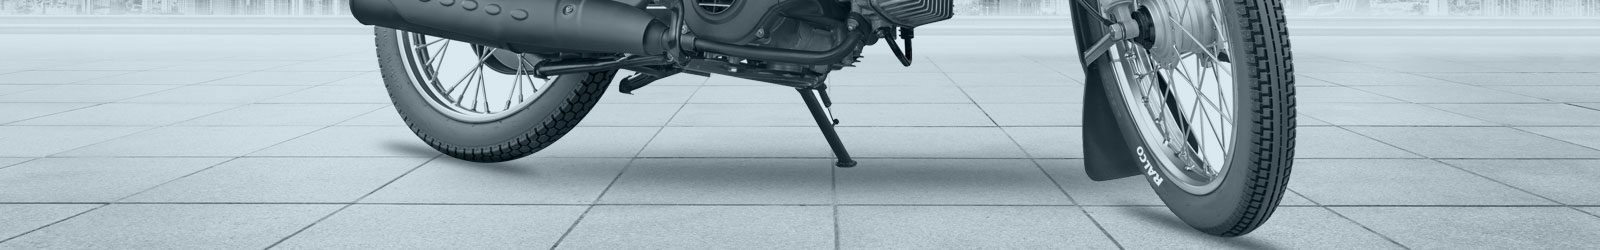 Moped tyres banner